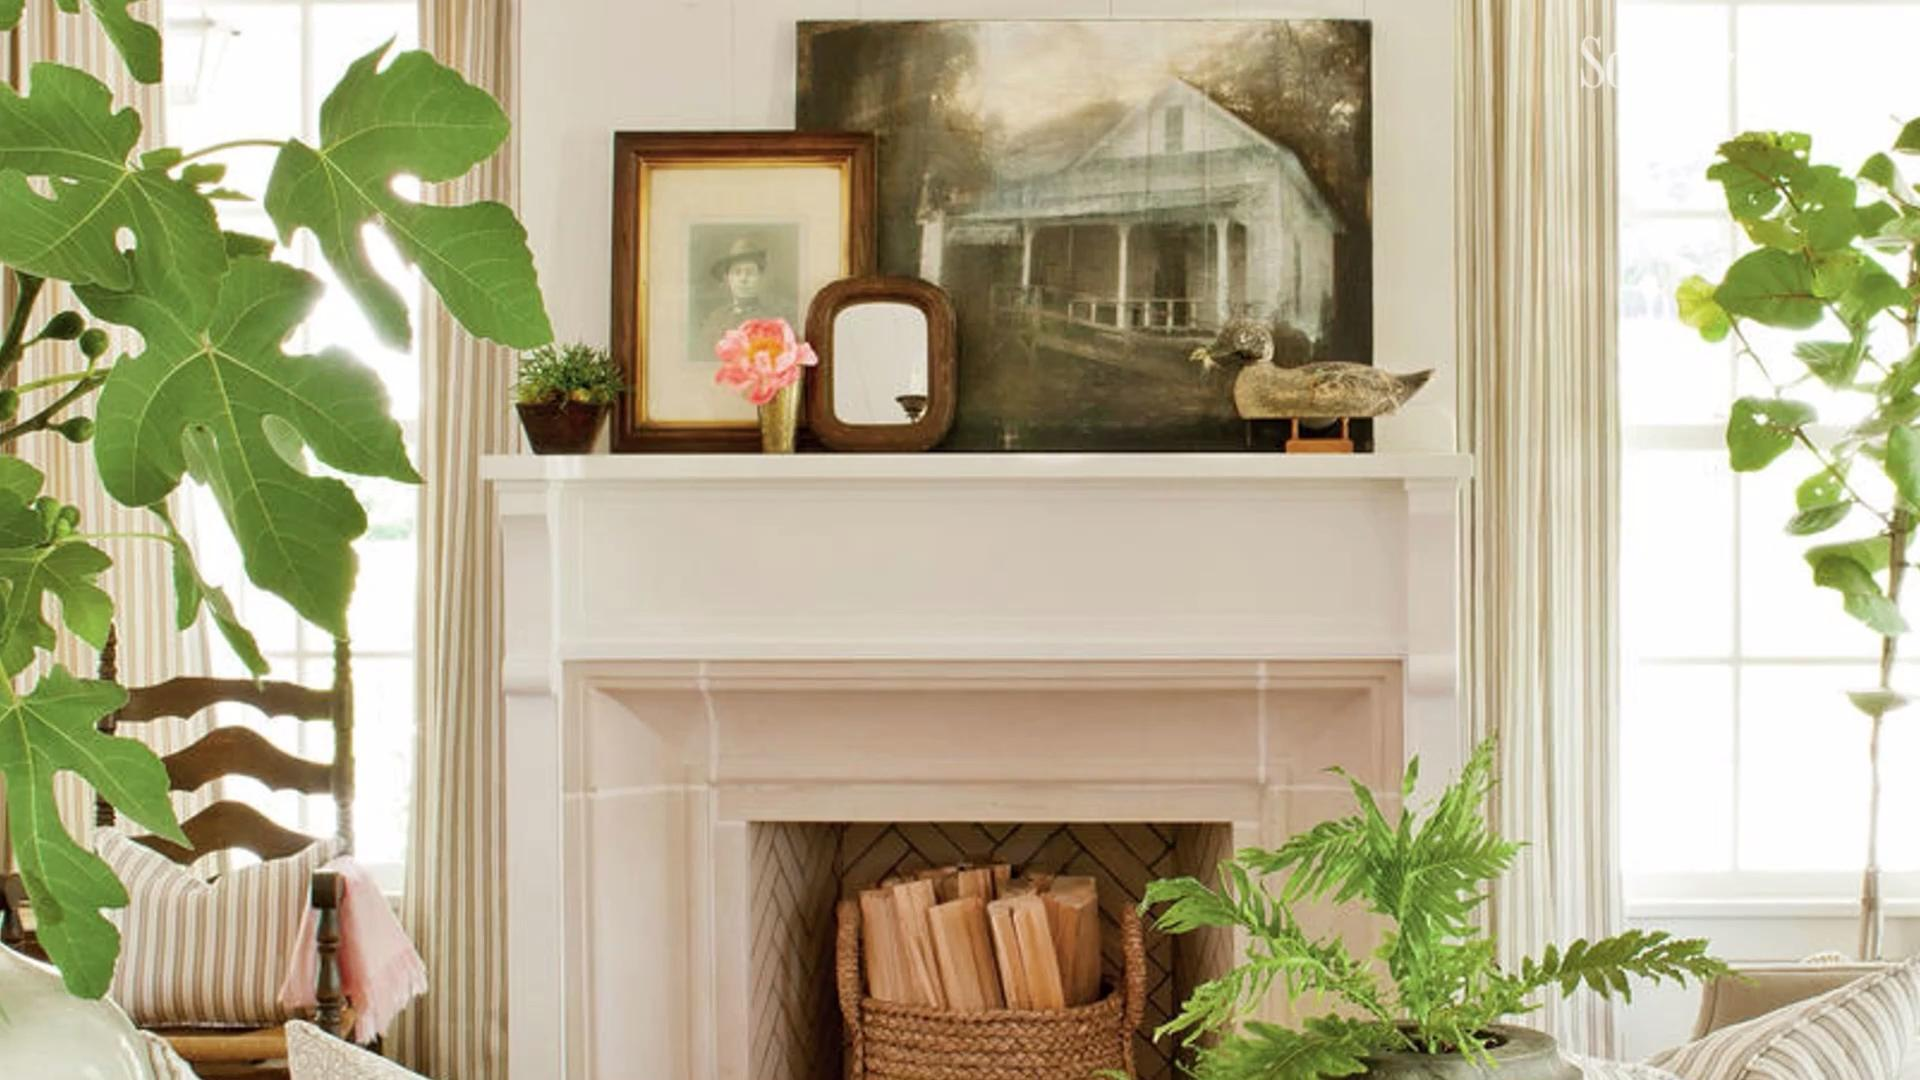 Does Your Fireplace Mantel Need an Update? Get Inspired: